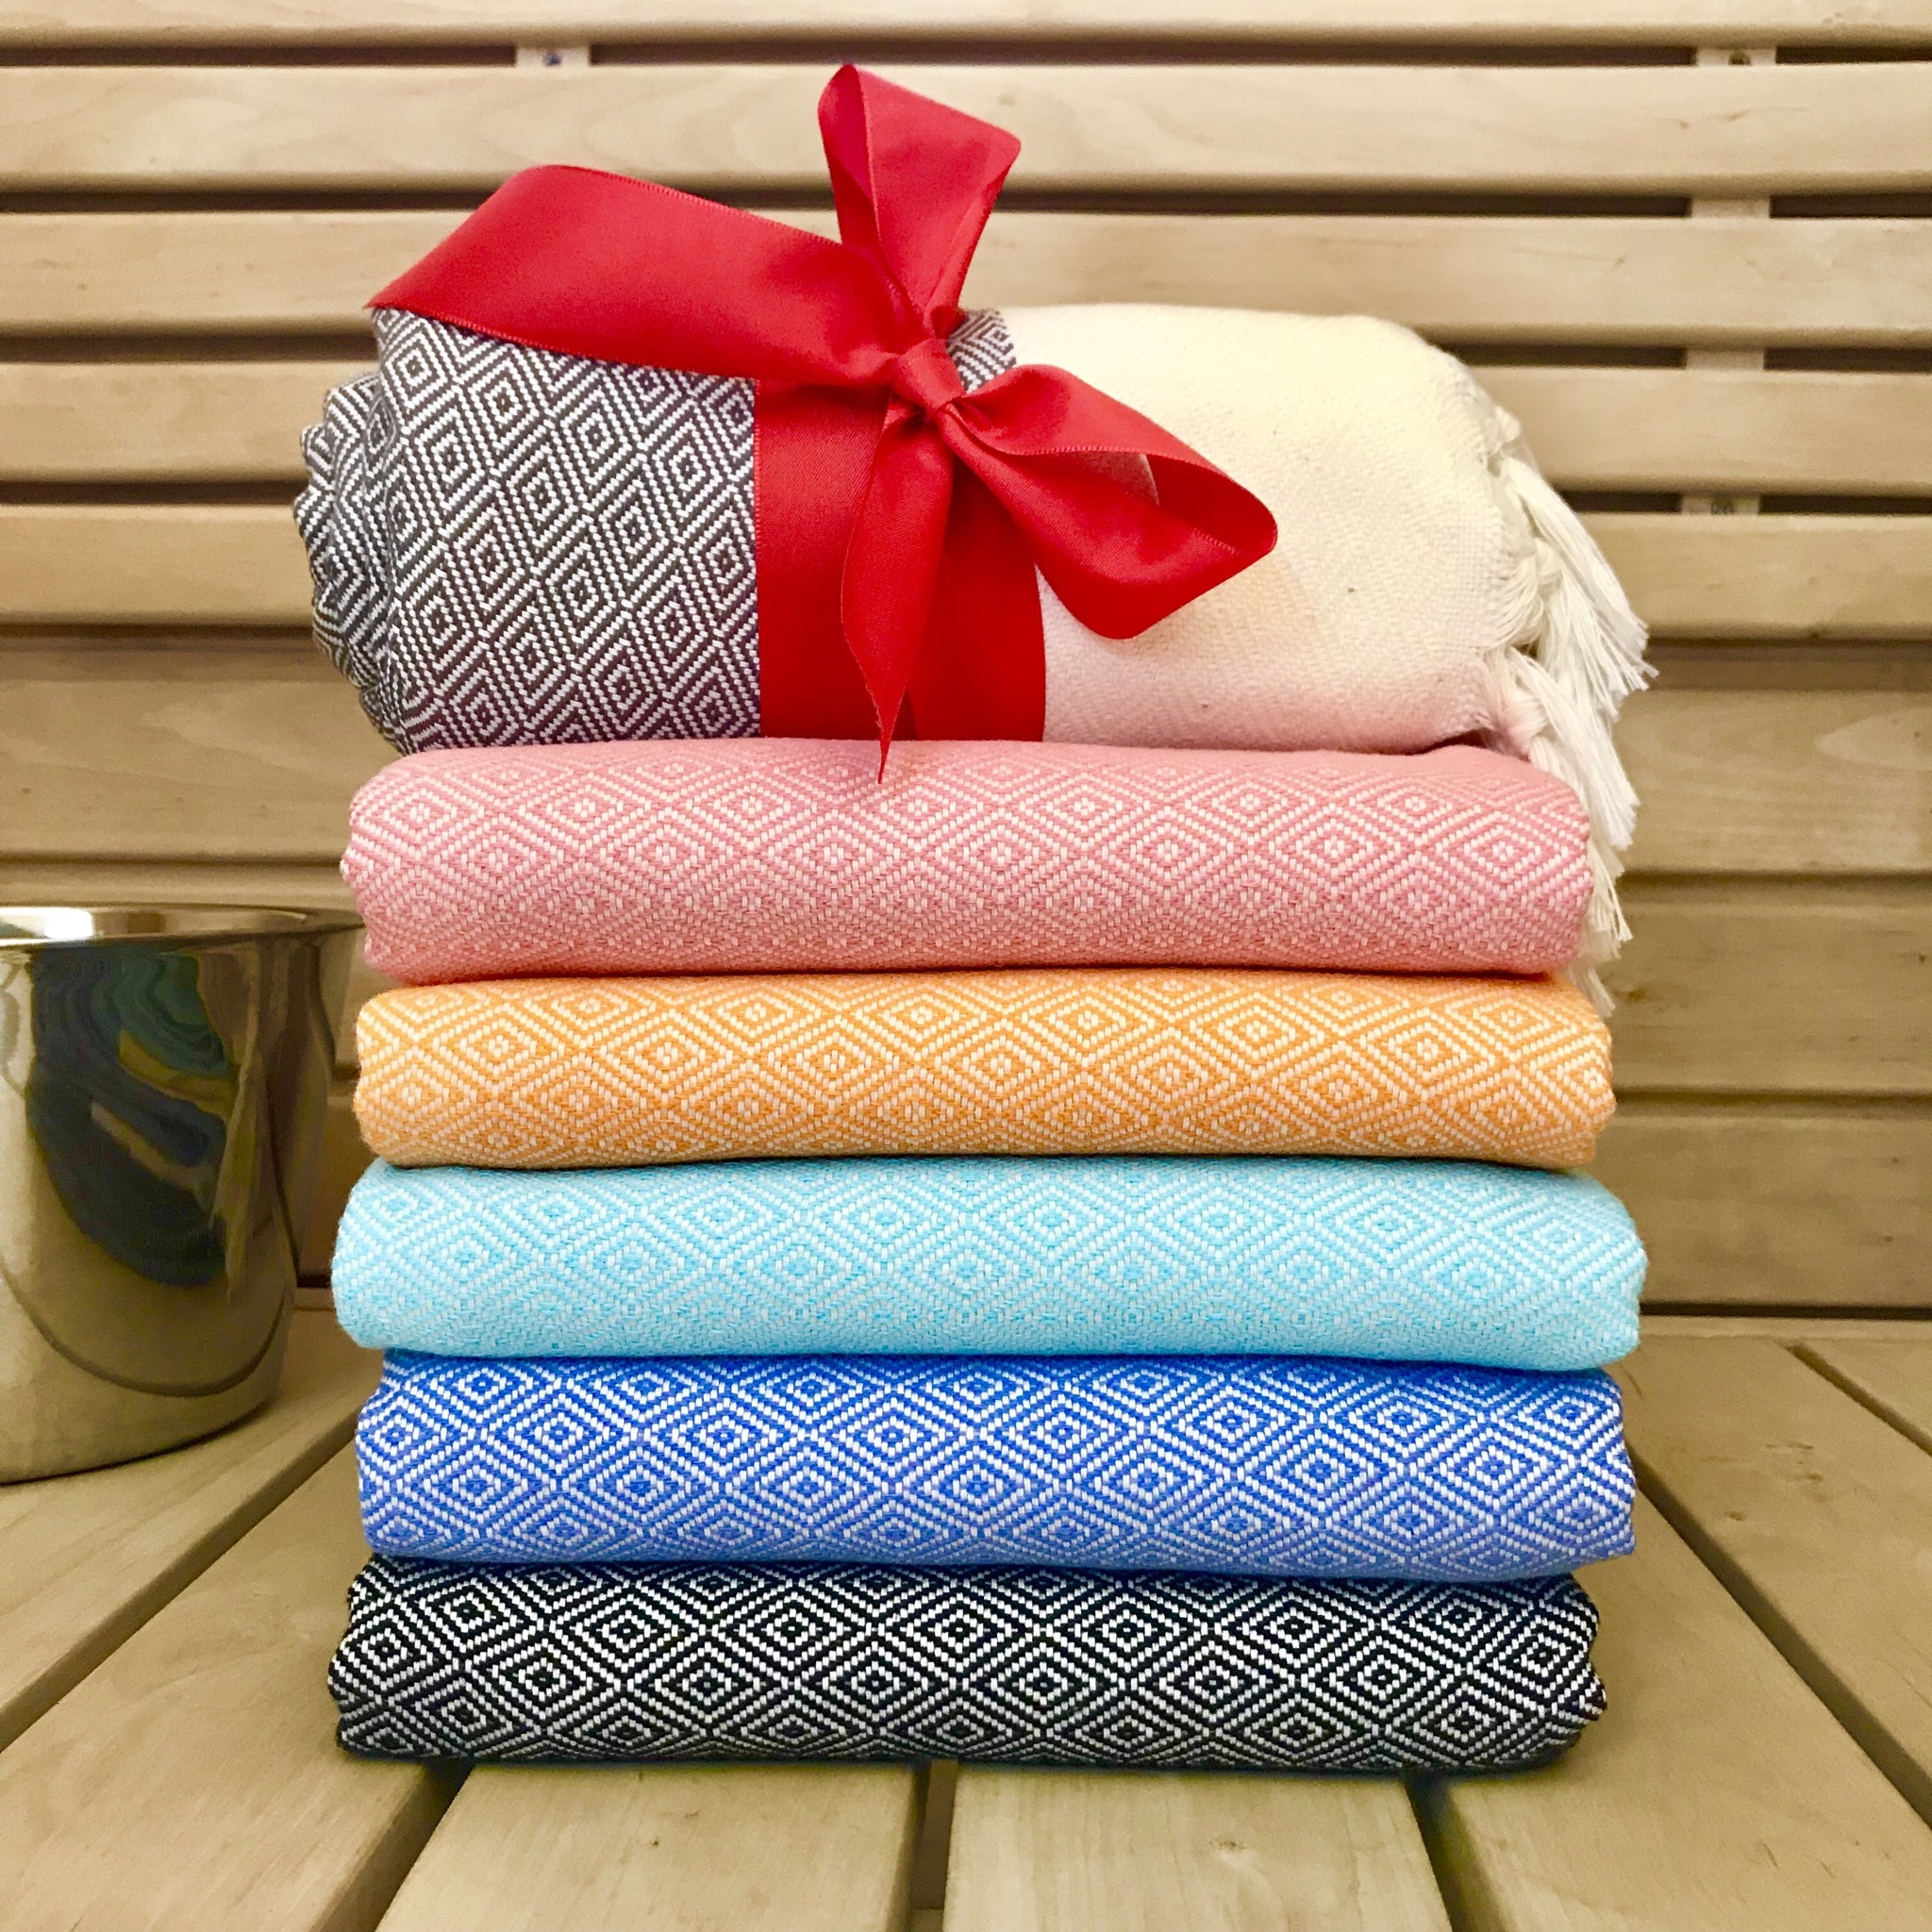 hammam-towels-sopretty